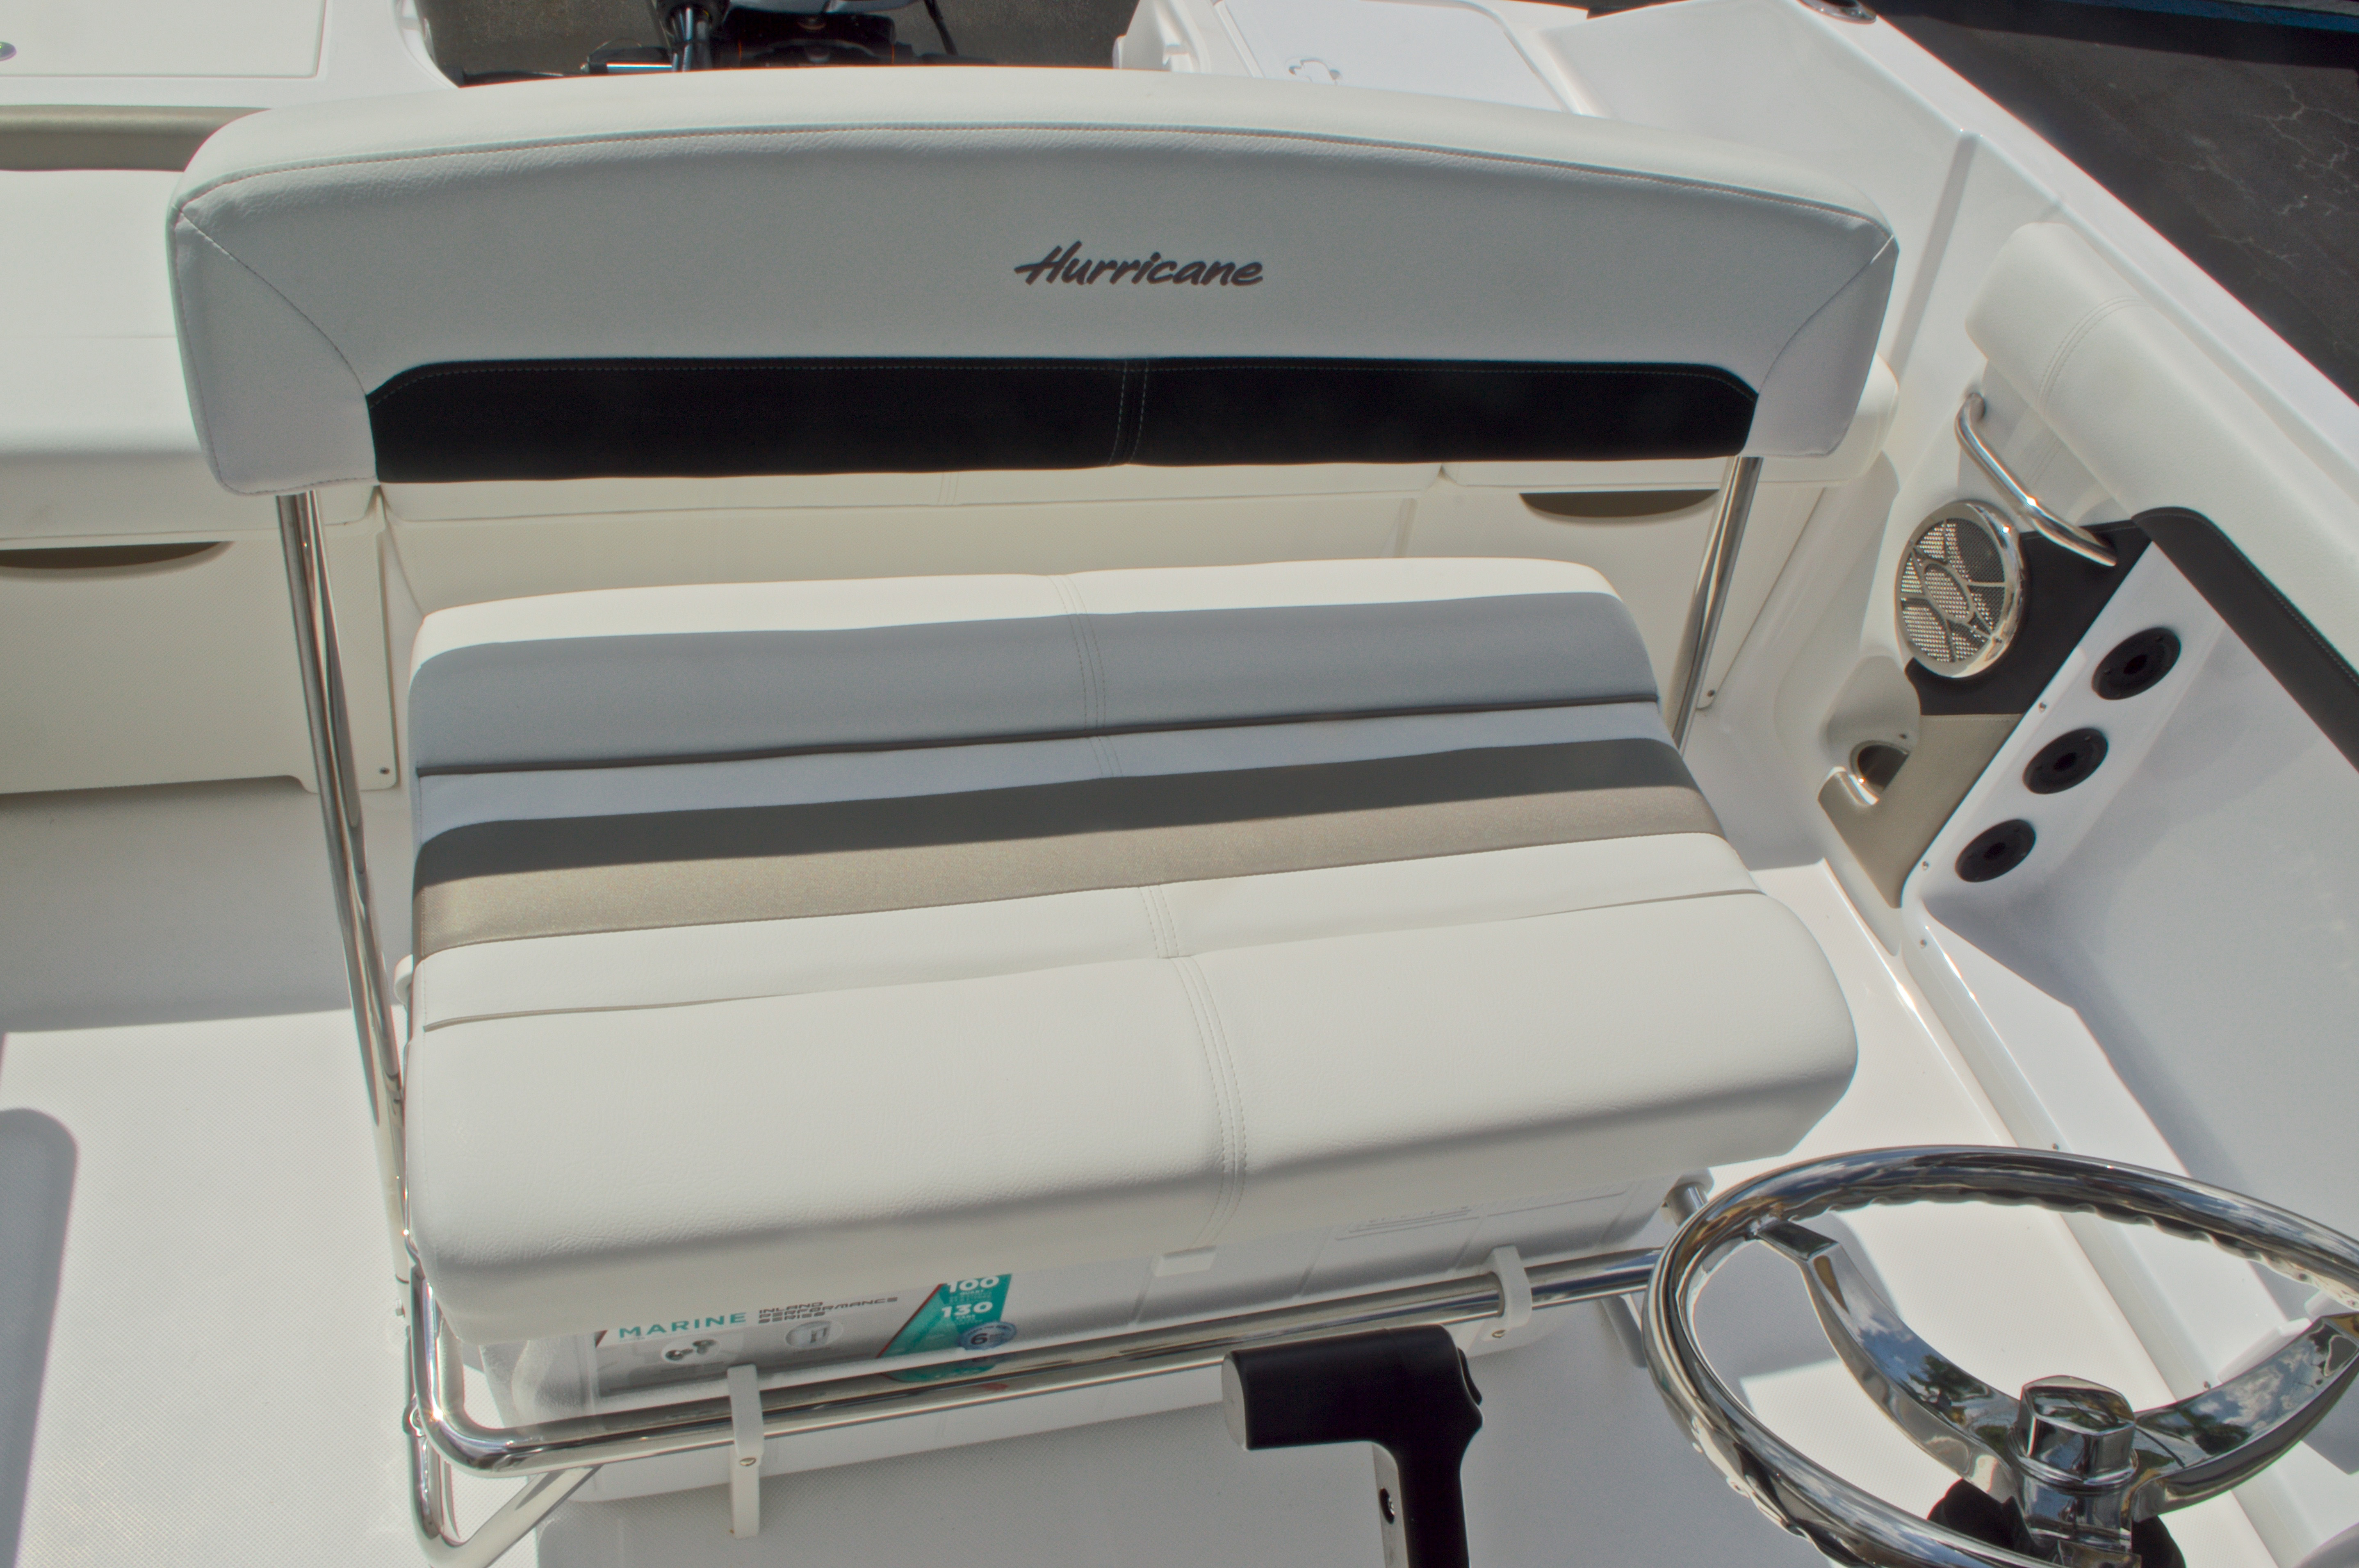 Thumbnail 27 for New 2016 Hurricane CC19 Center Console boat for sale in West Palm Beach, FL